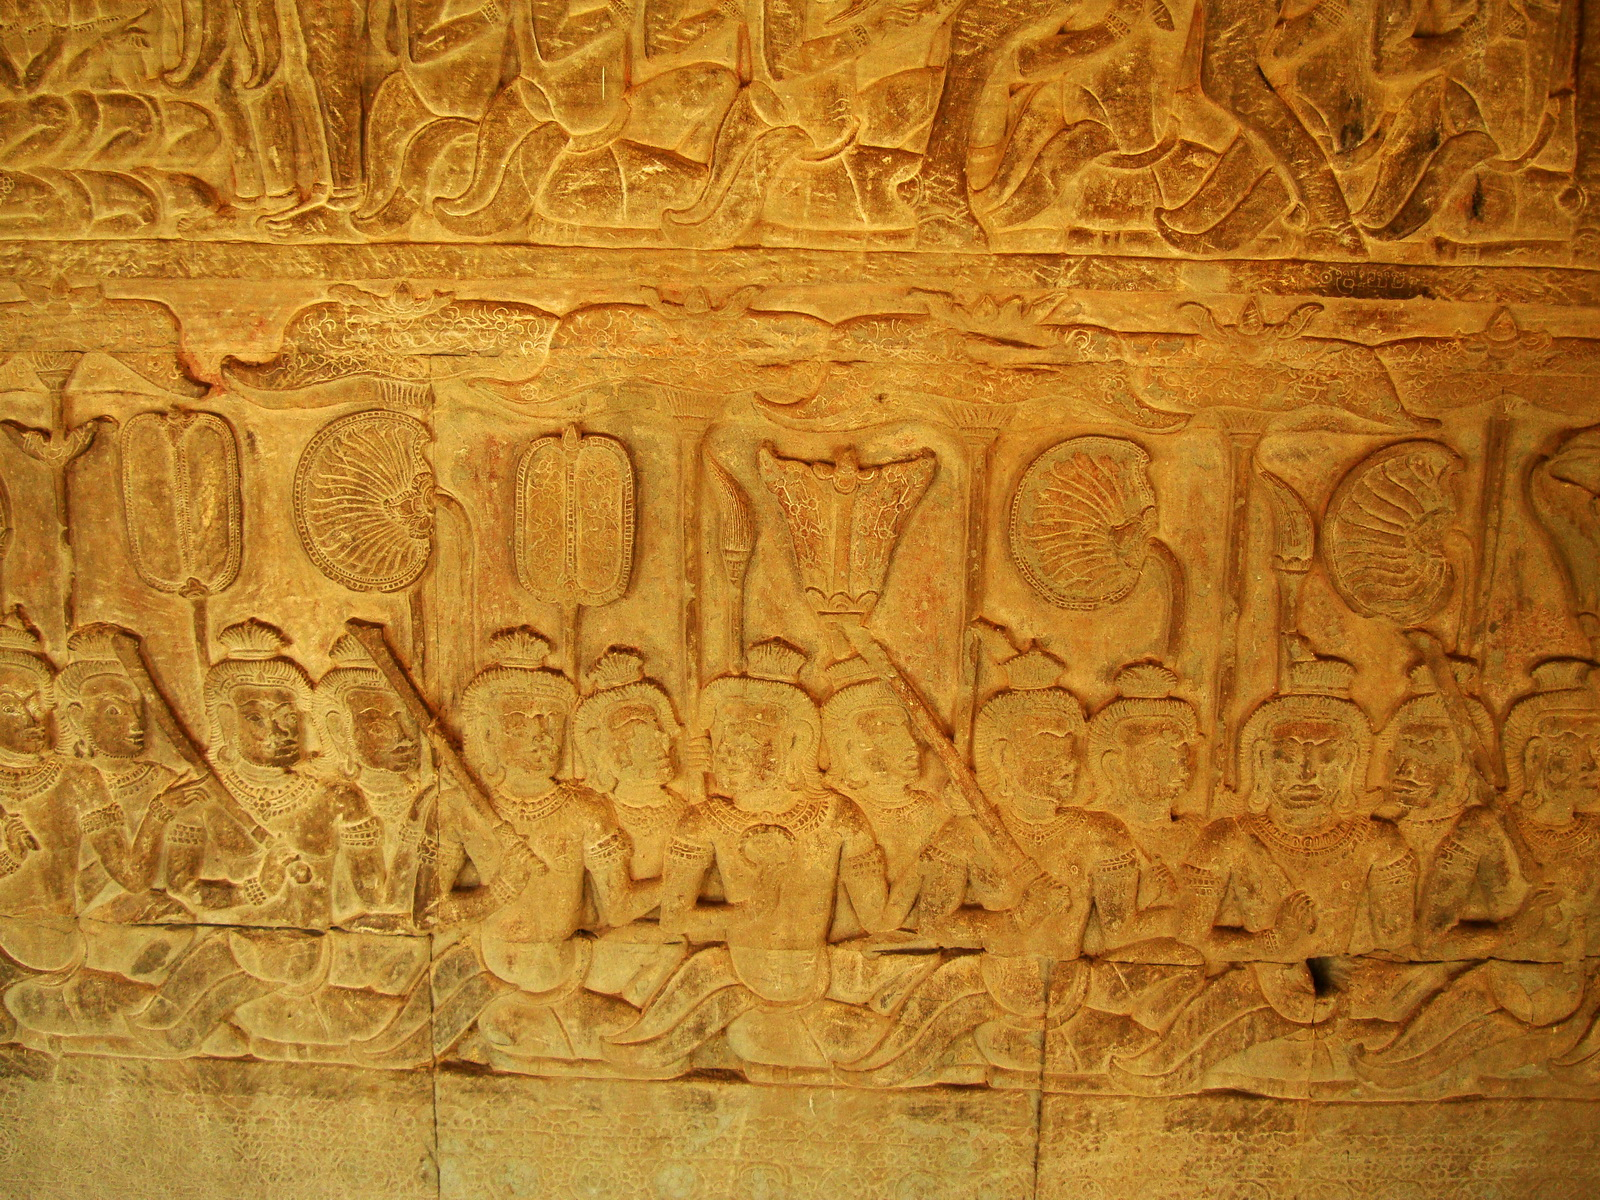 Angkor Wat Bas relief S Gallery E Wing Heavens and Hells 59